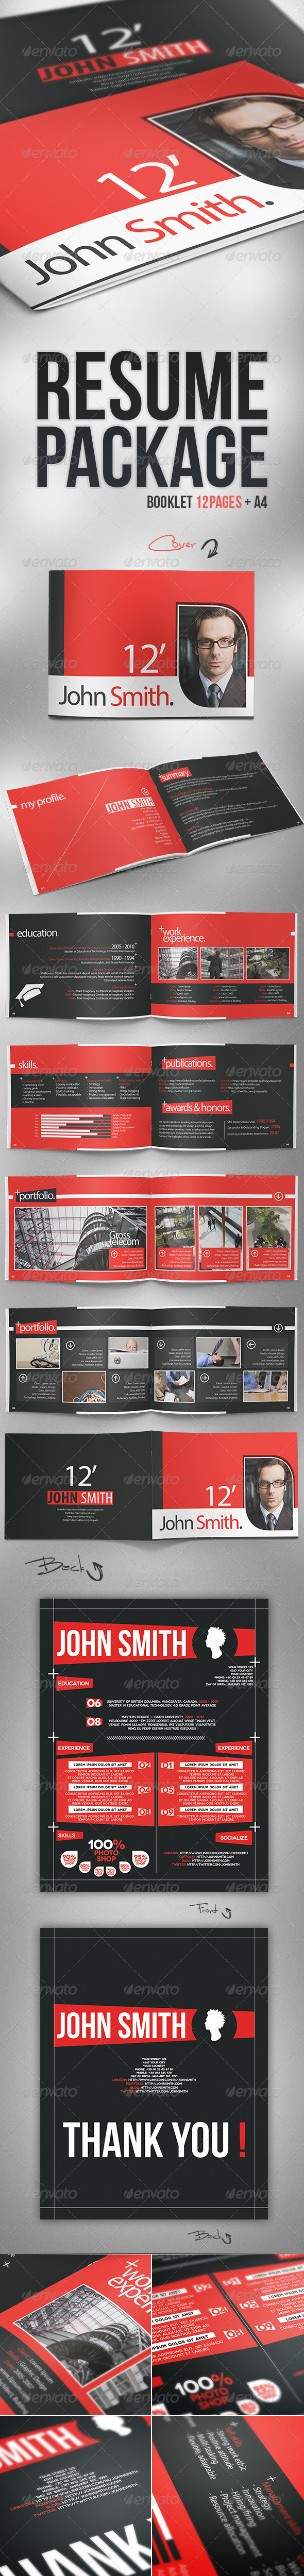 GraphicRiver Resume Package 2714667